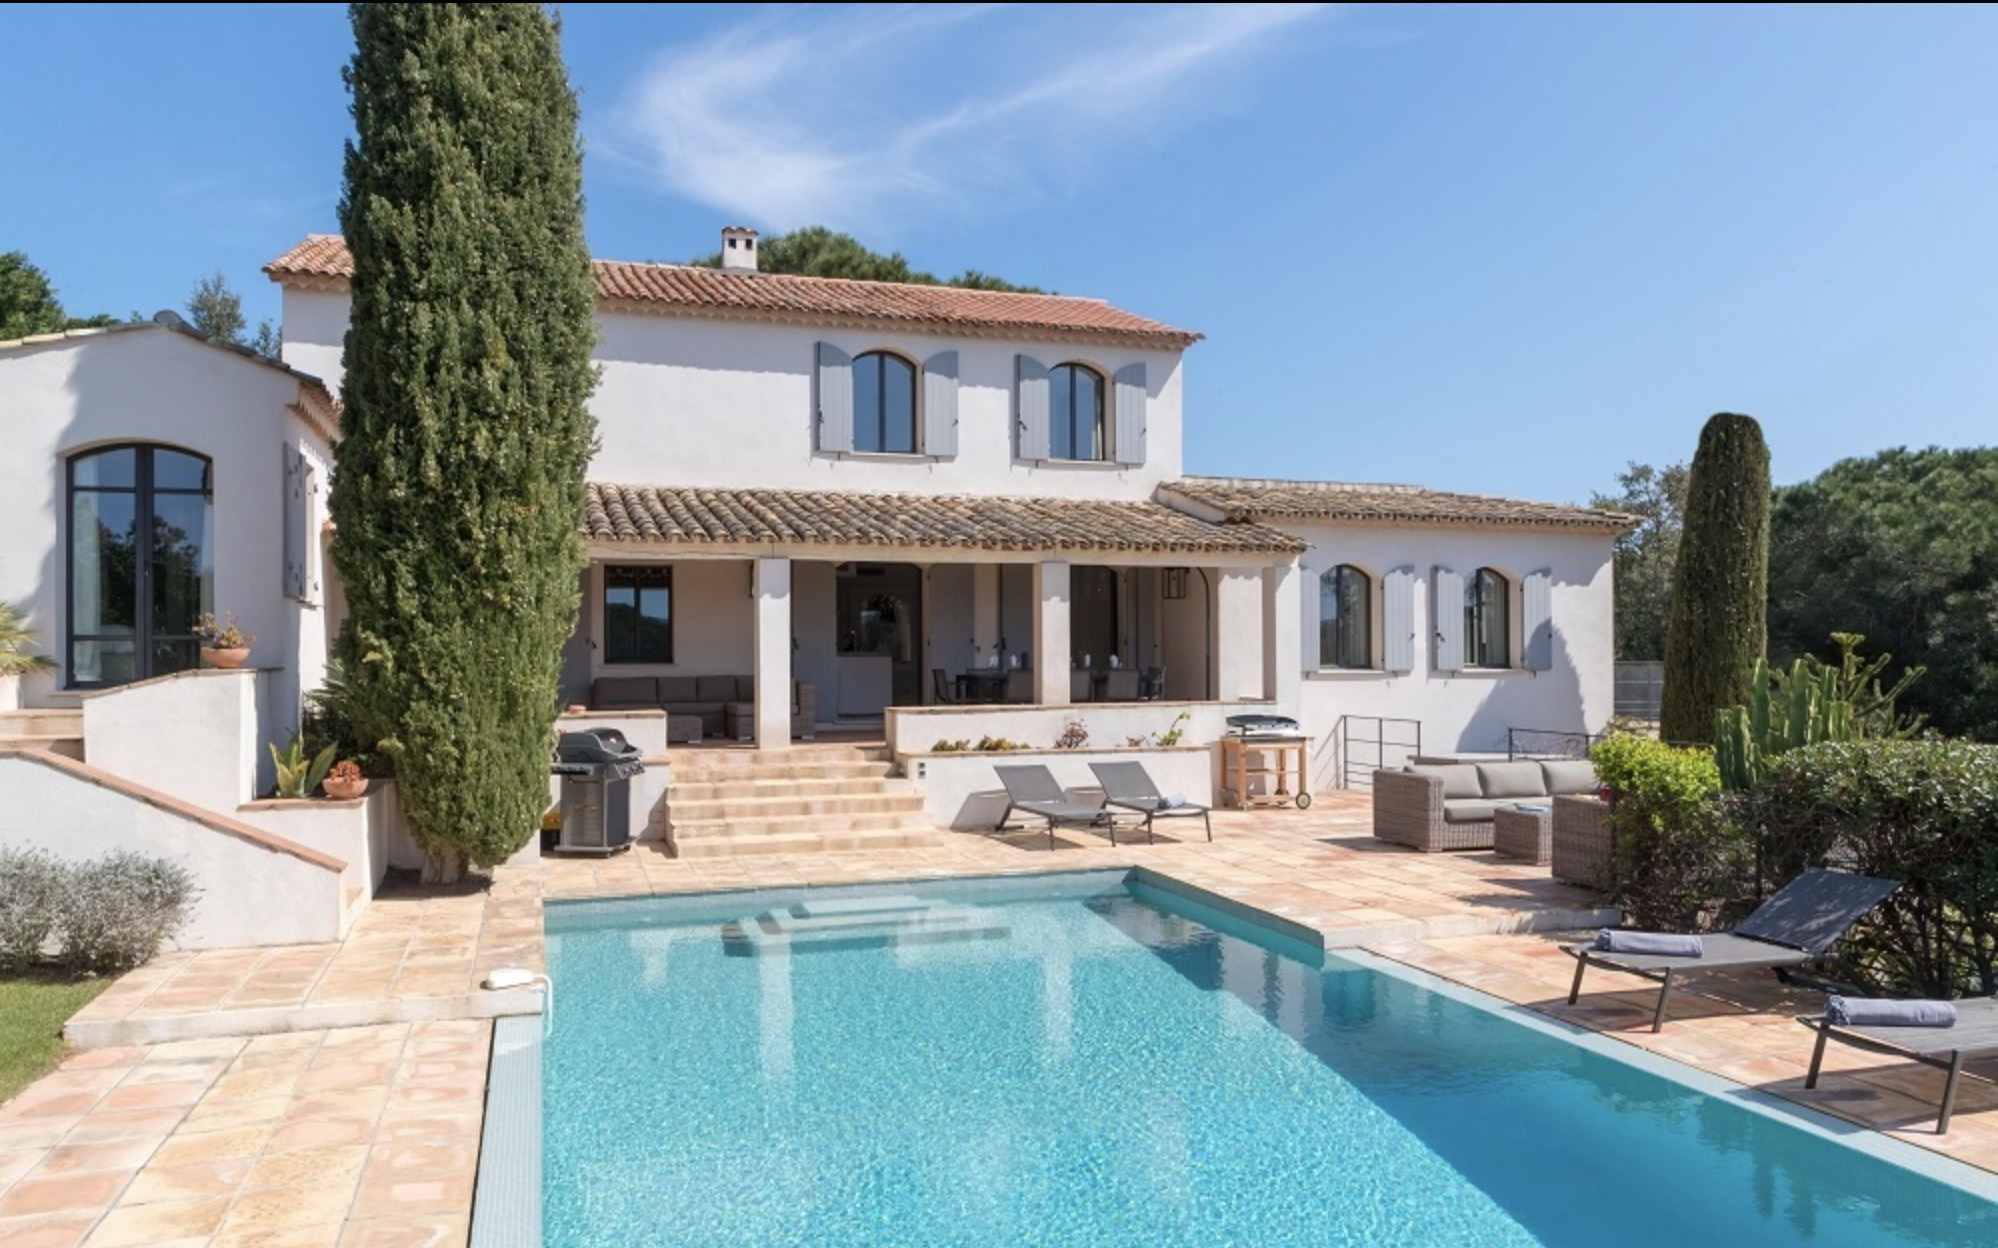 VILLA ST. TROPEZ  WALKING DISTANCE TO THE SEA